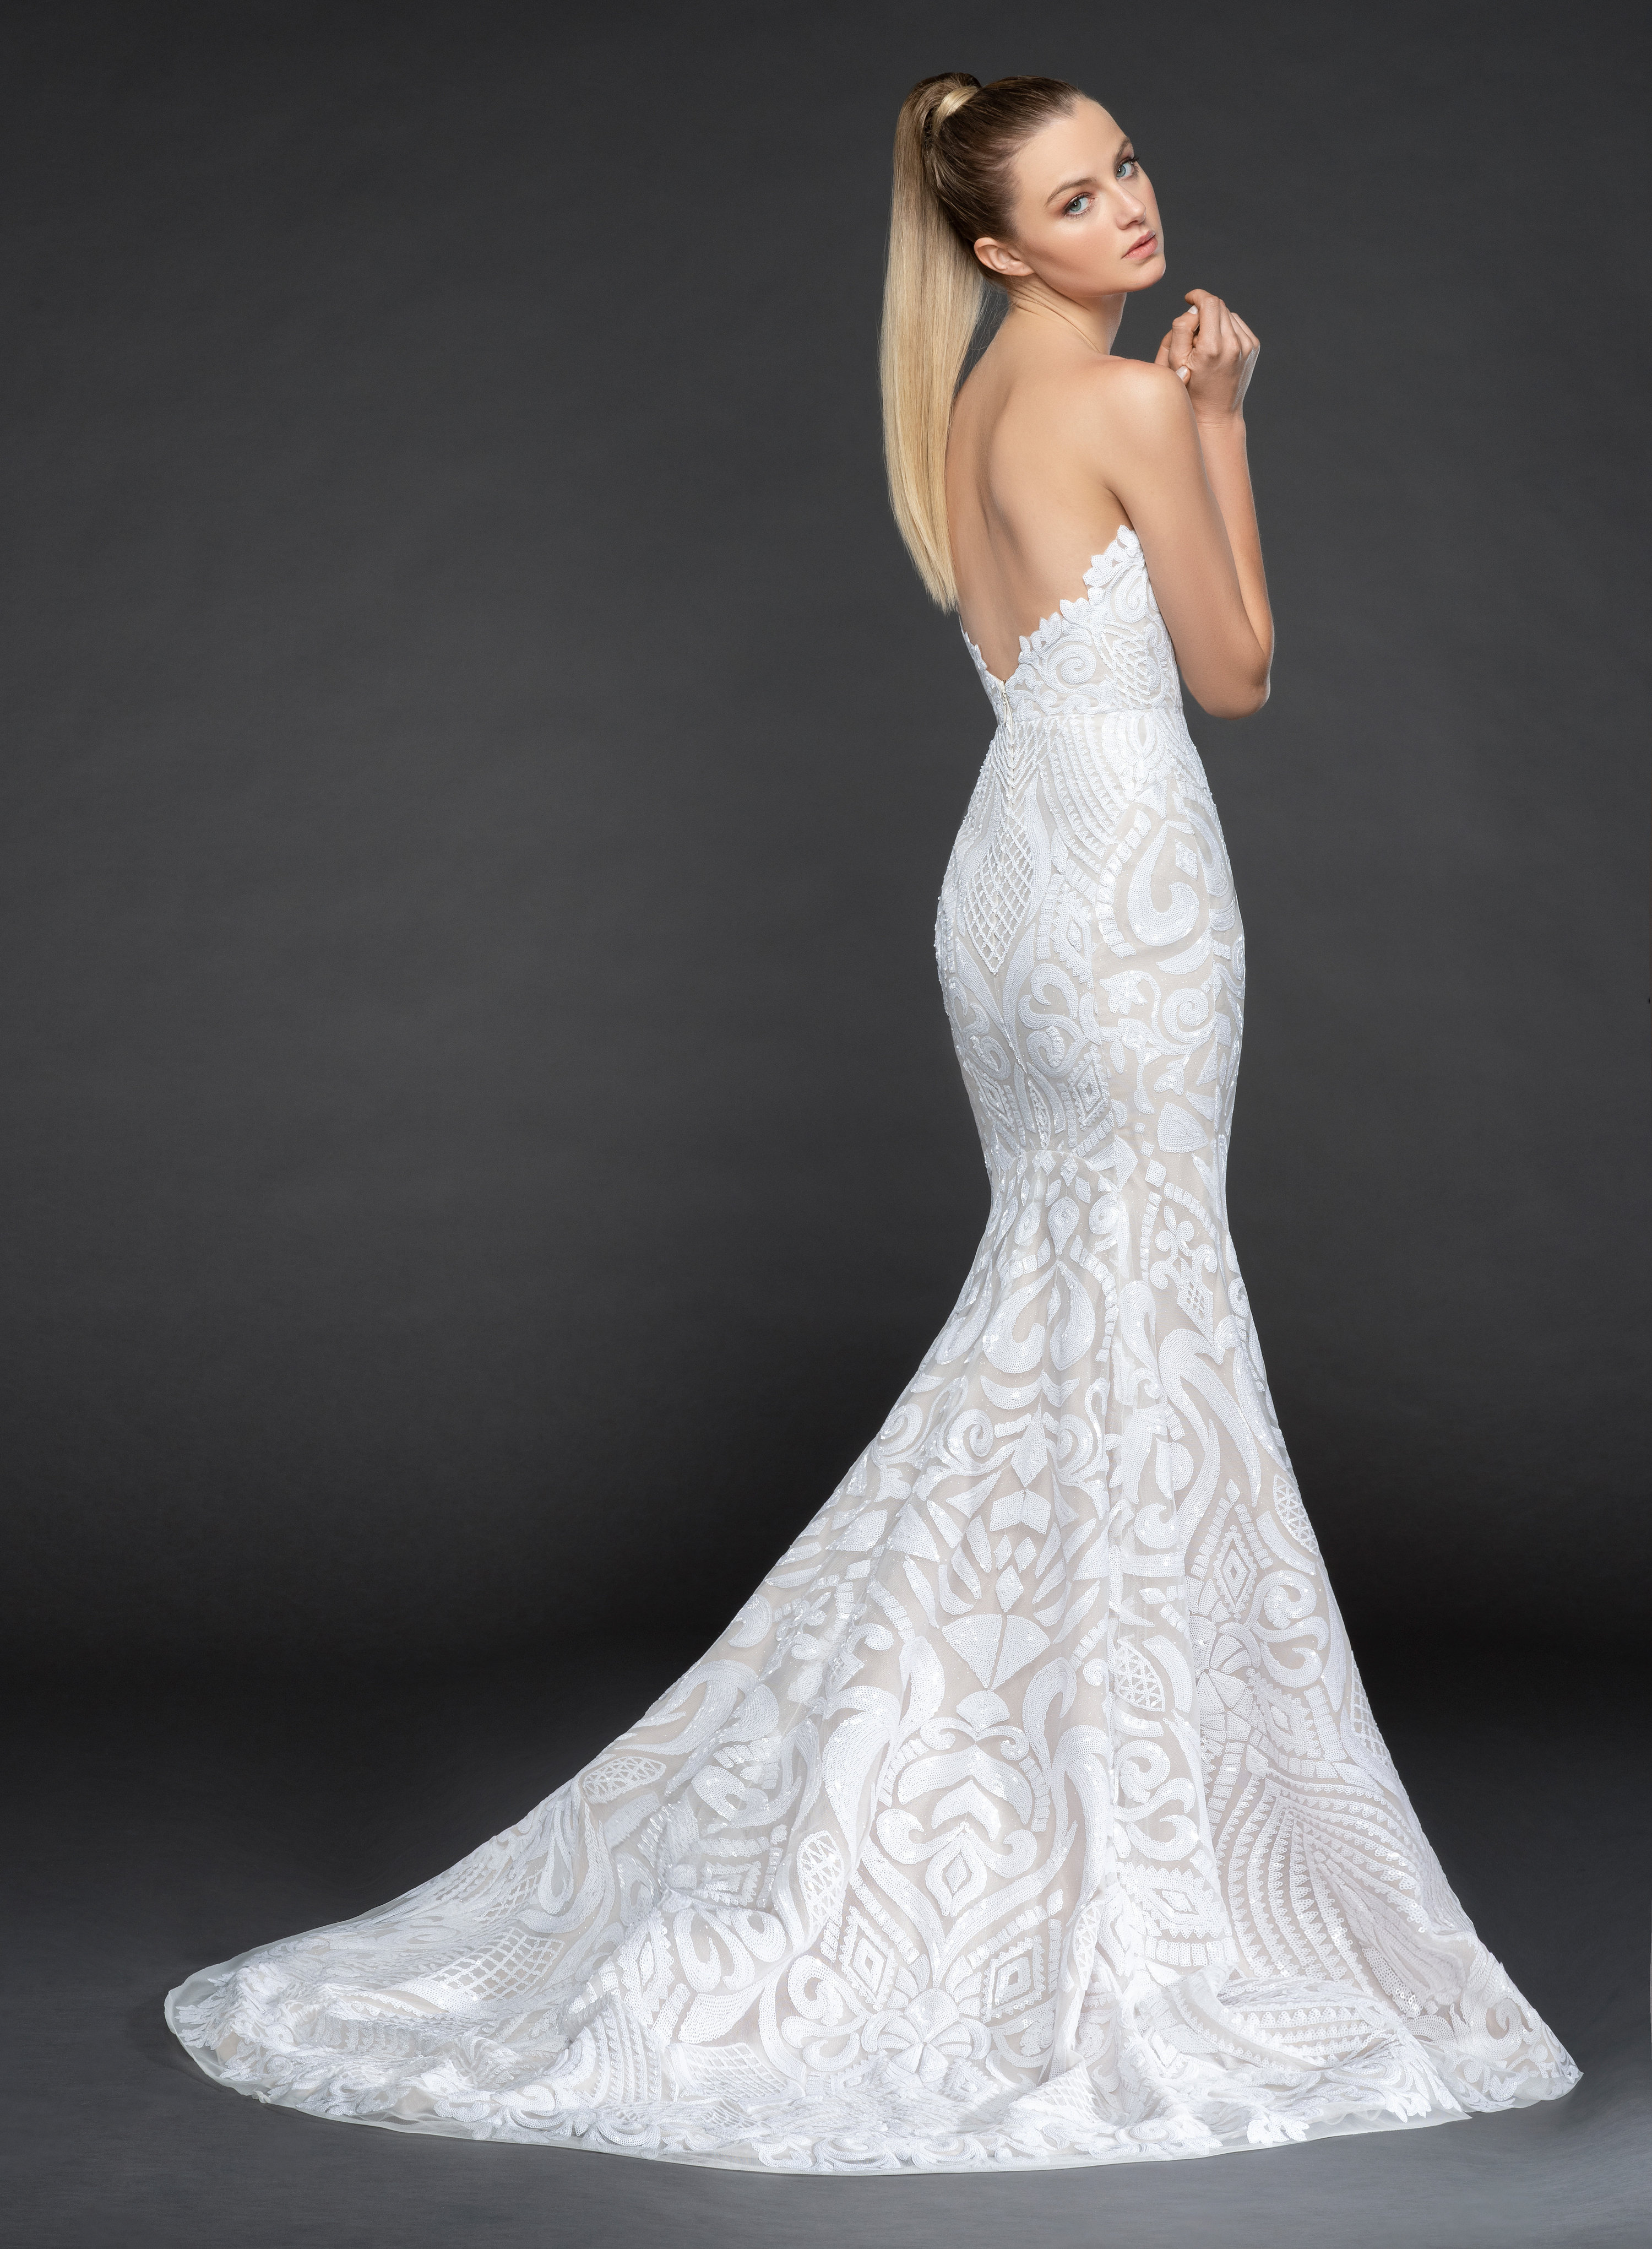 Strapless Beaded Fit And Flare Wedding Dress With Scallop Accent ...